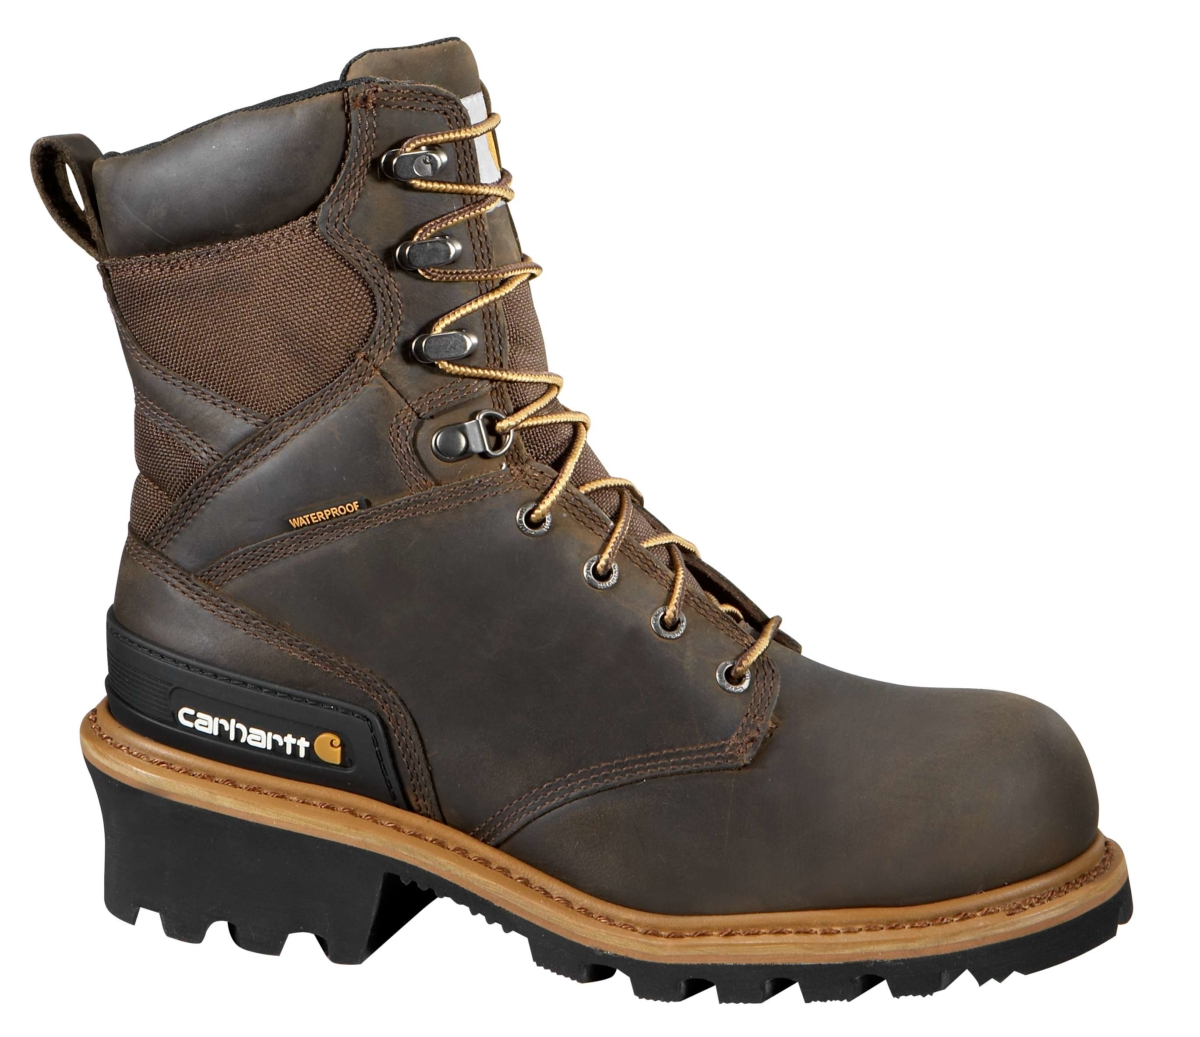 Carhartt 8 INCH COMPOSITE TOE CLIMBING BOOT Crazy Horse Brown Oil Tanned USA - GOOFASH - Mens BOOTS